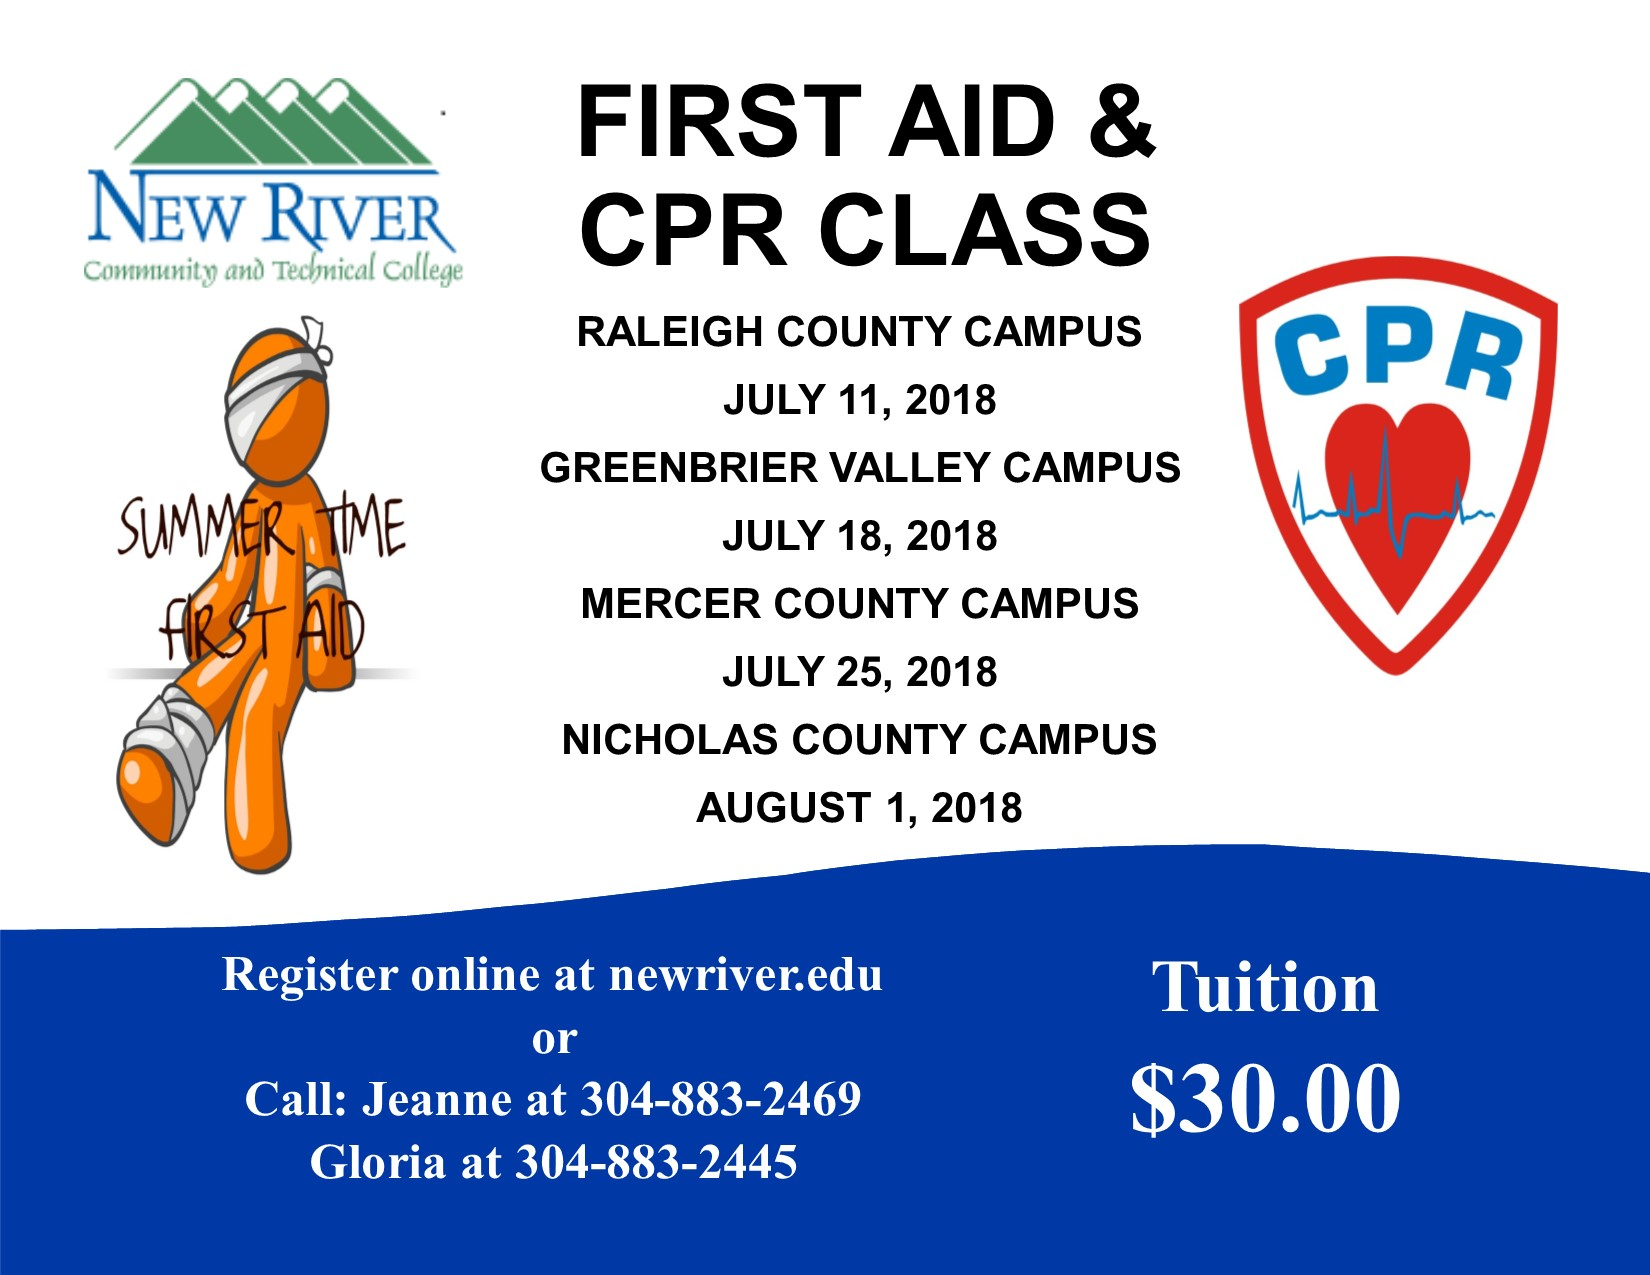 First Aid And Cpr Trainings Scheduled At New River Ctc New River